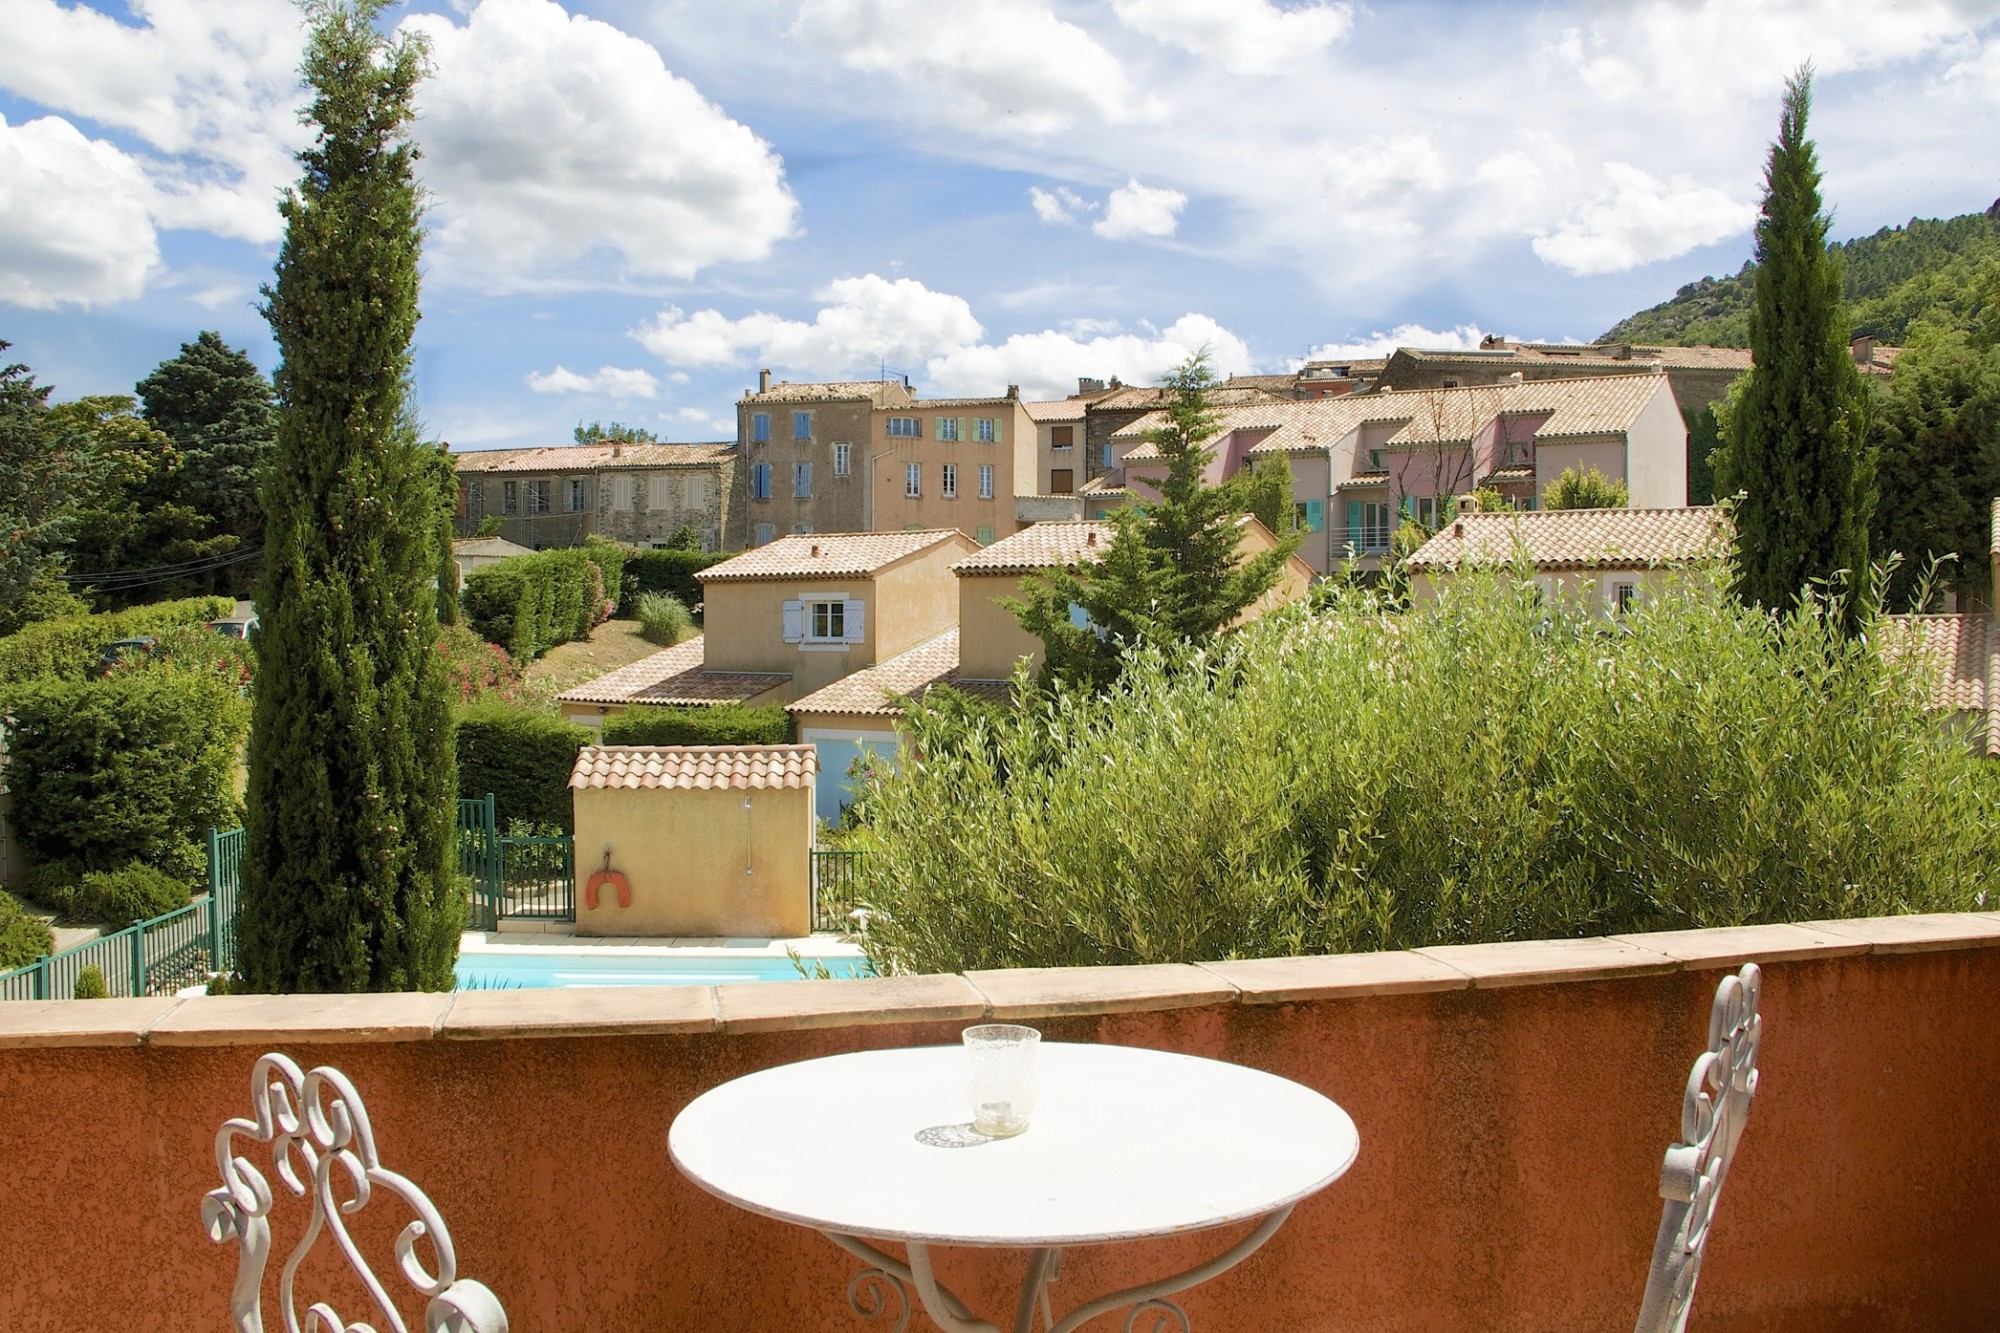 Achat maison de village et appartement sur grimaud ou for Maison ou appartement